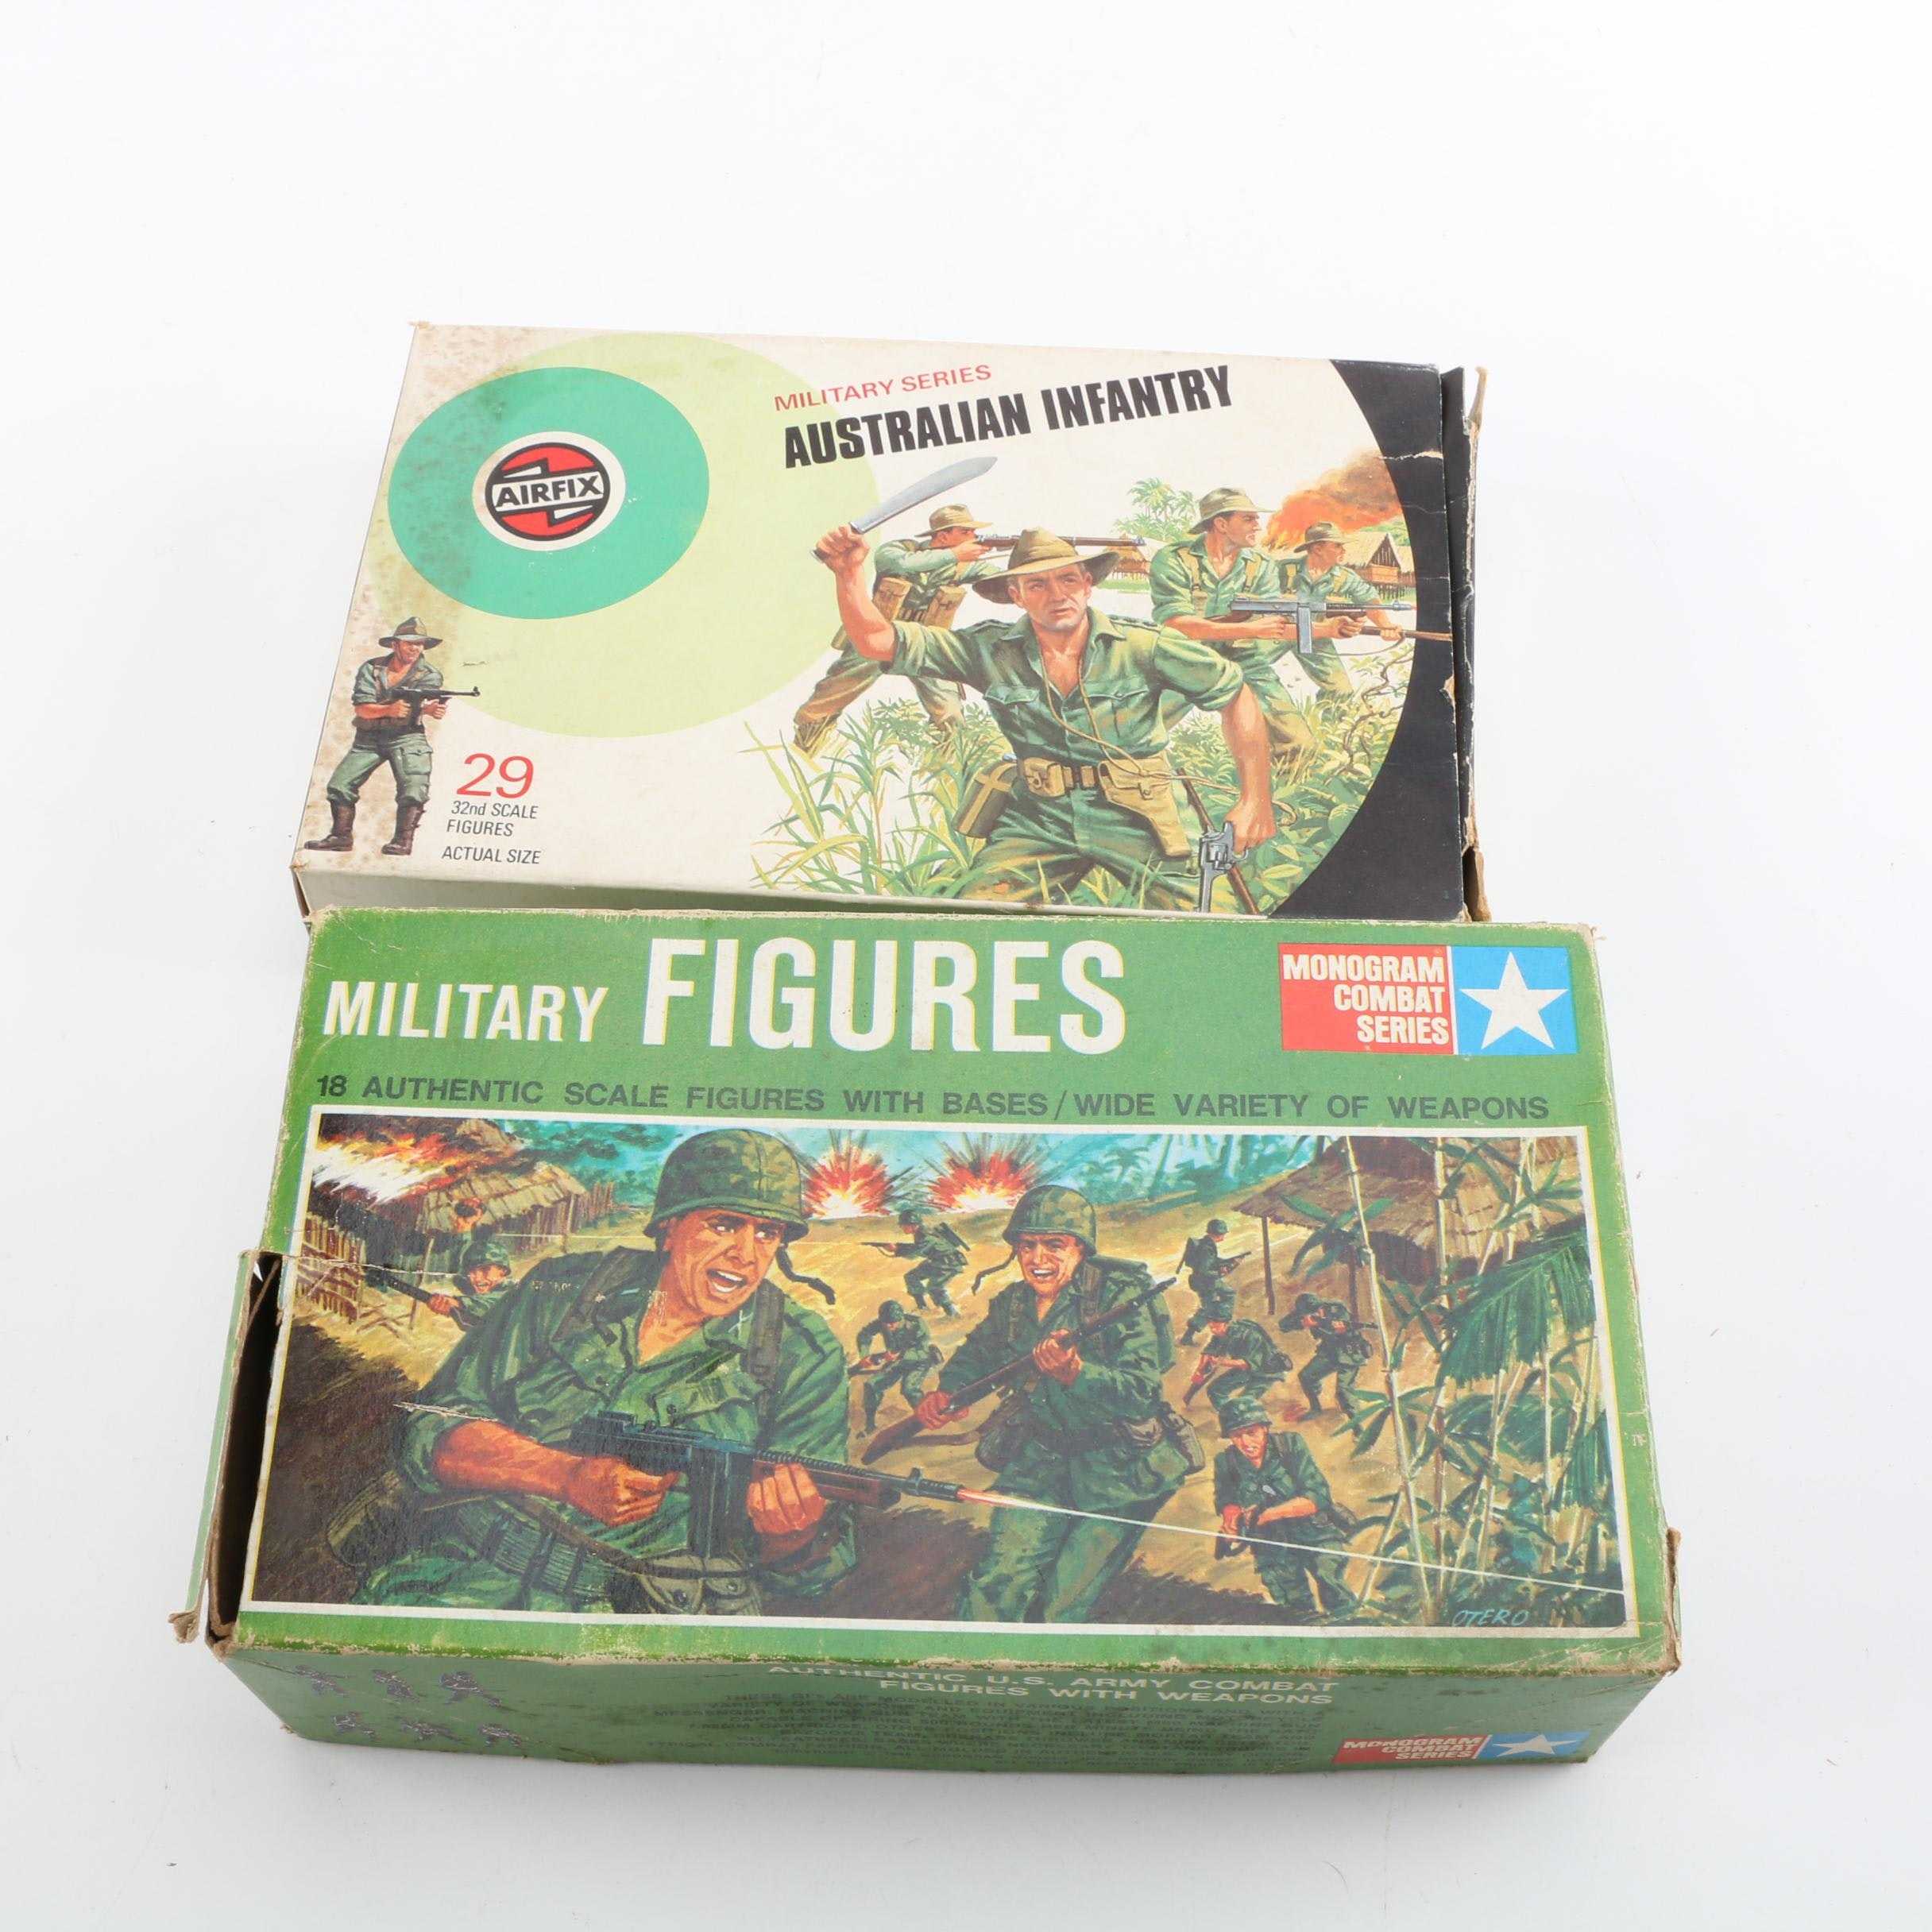 Airfix Australian Infantry and Monogram Combat Series Toy Soldiers